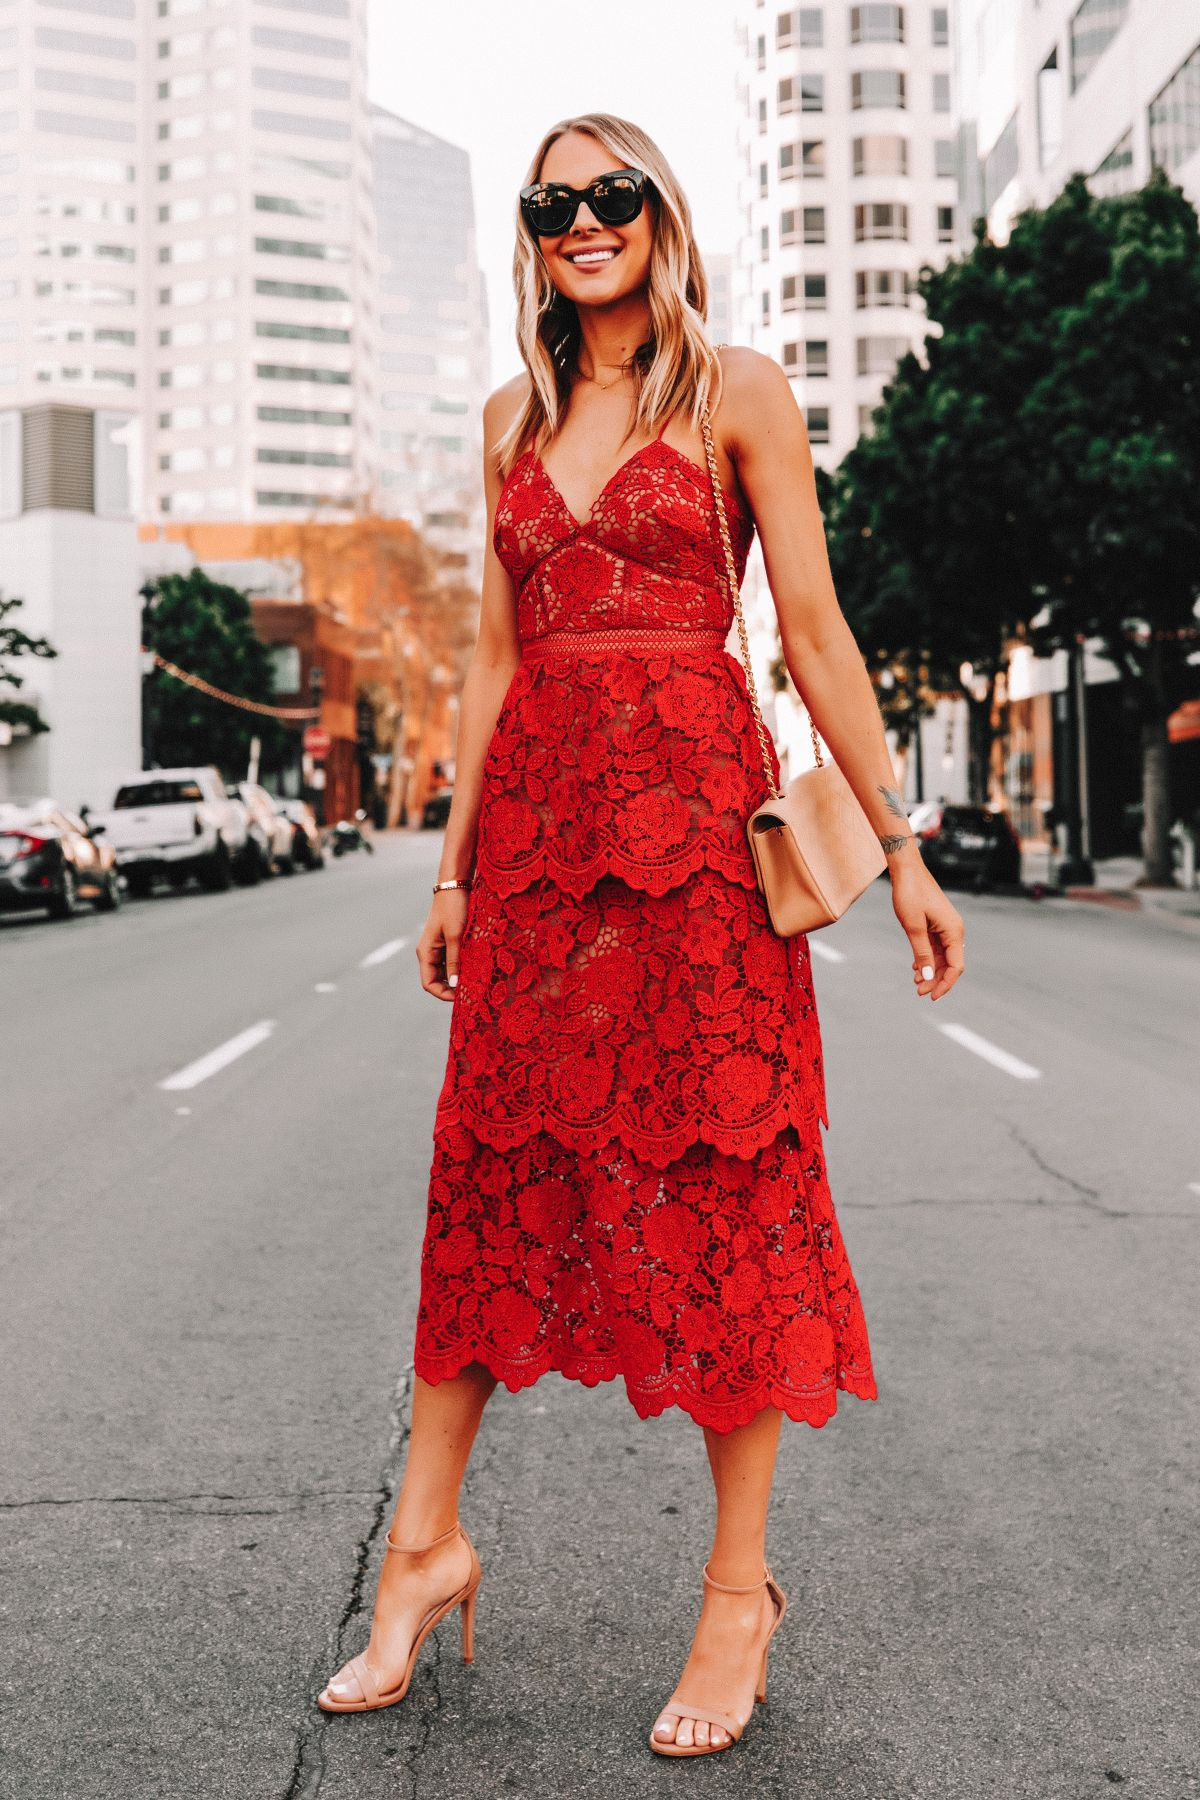 Fashion Jackson Wearing Self Portrait Red Lace Dress In 2020 Red Lace Dress Dresses To Wear To A Wedding Spring Wedding Guest Dress